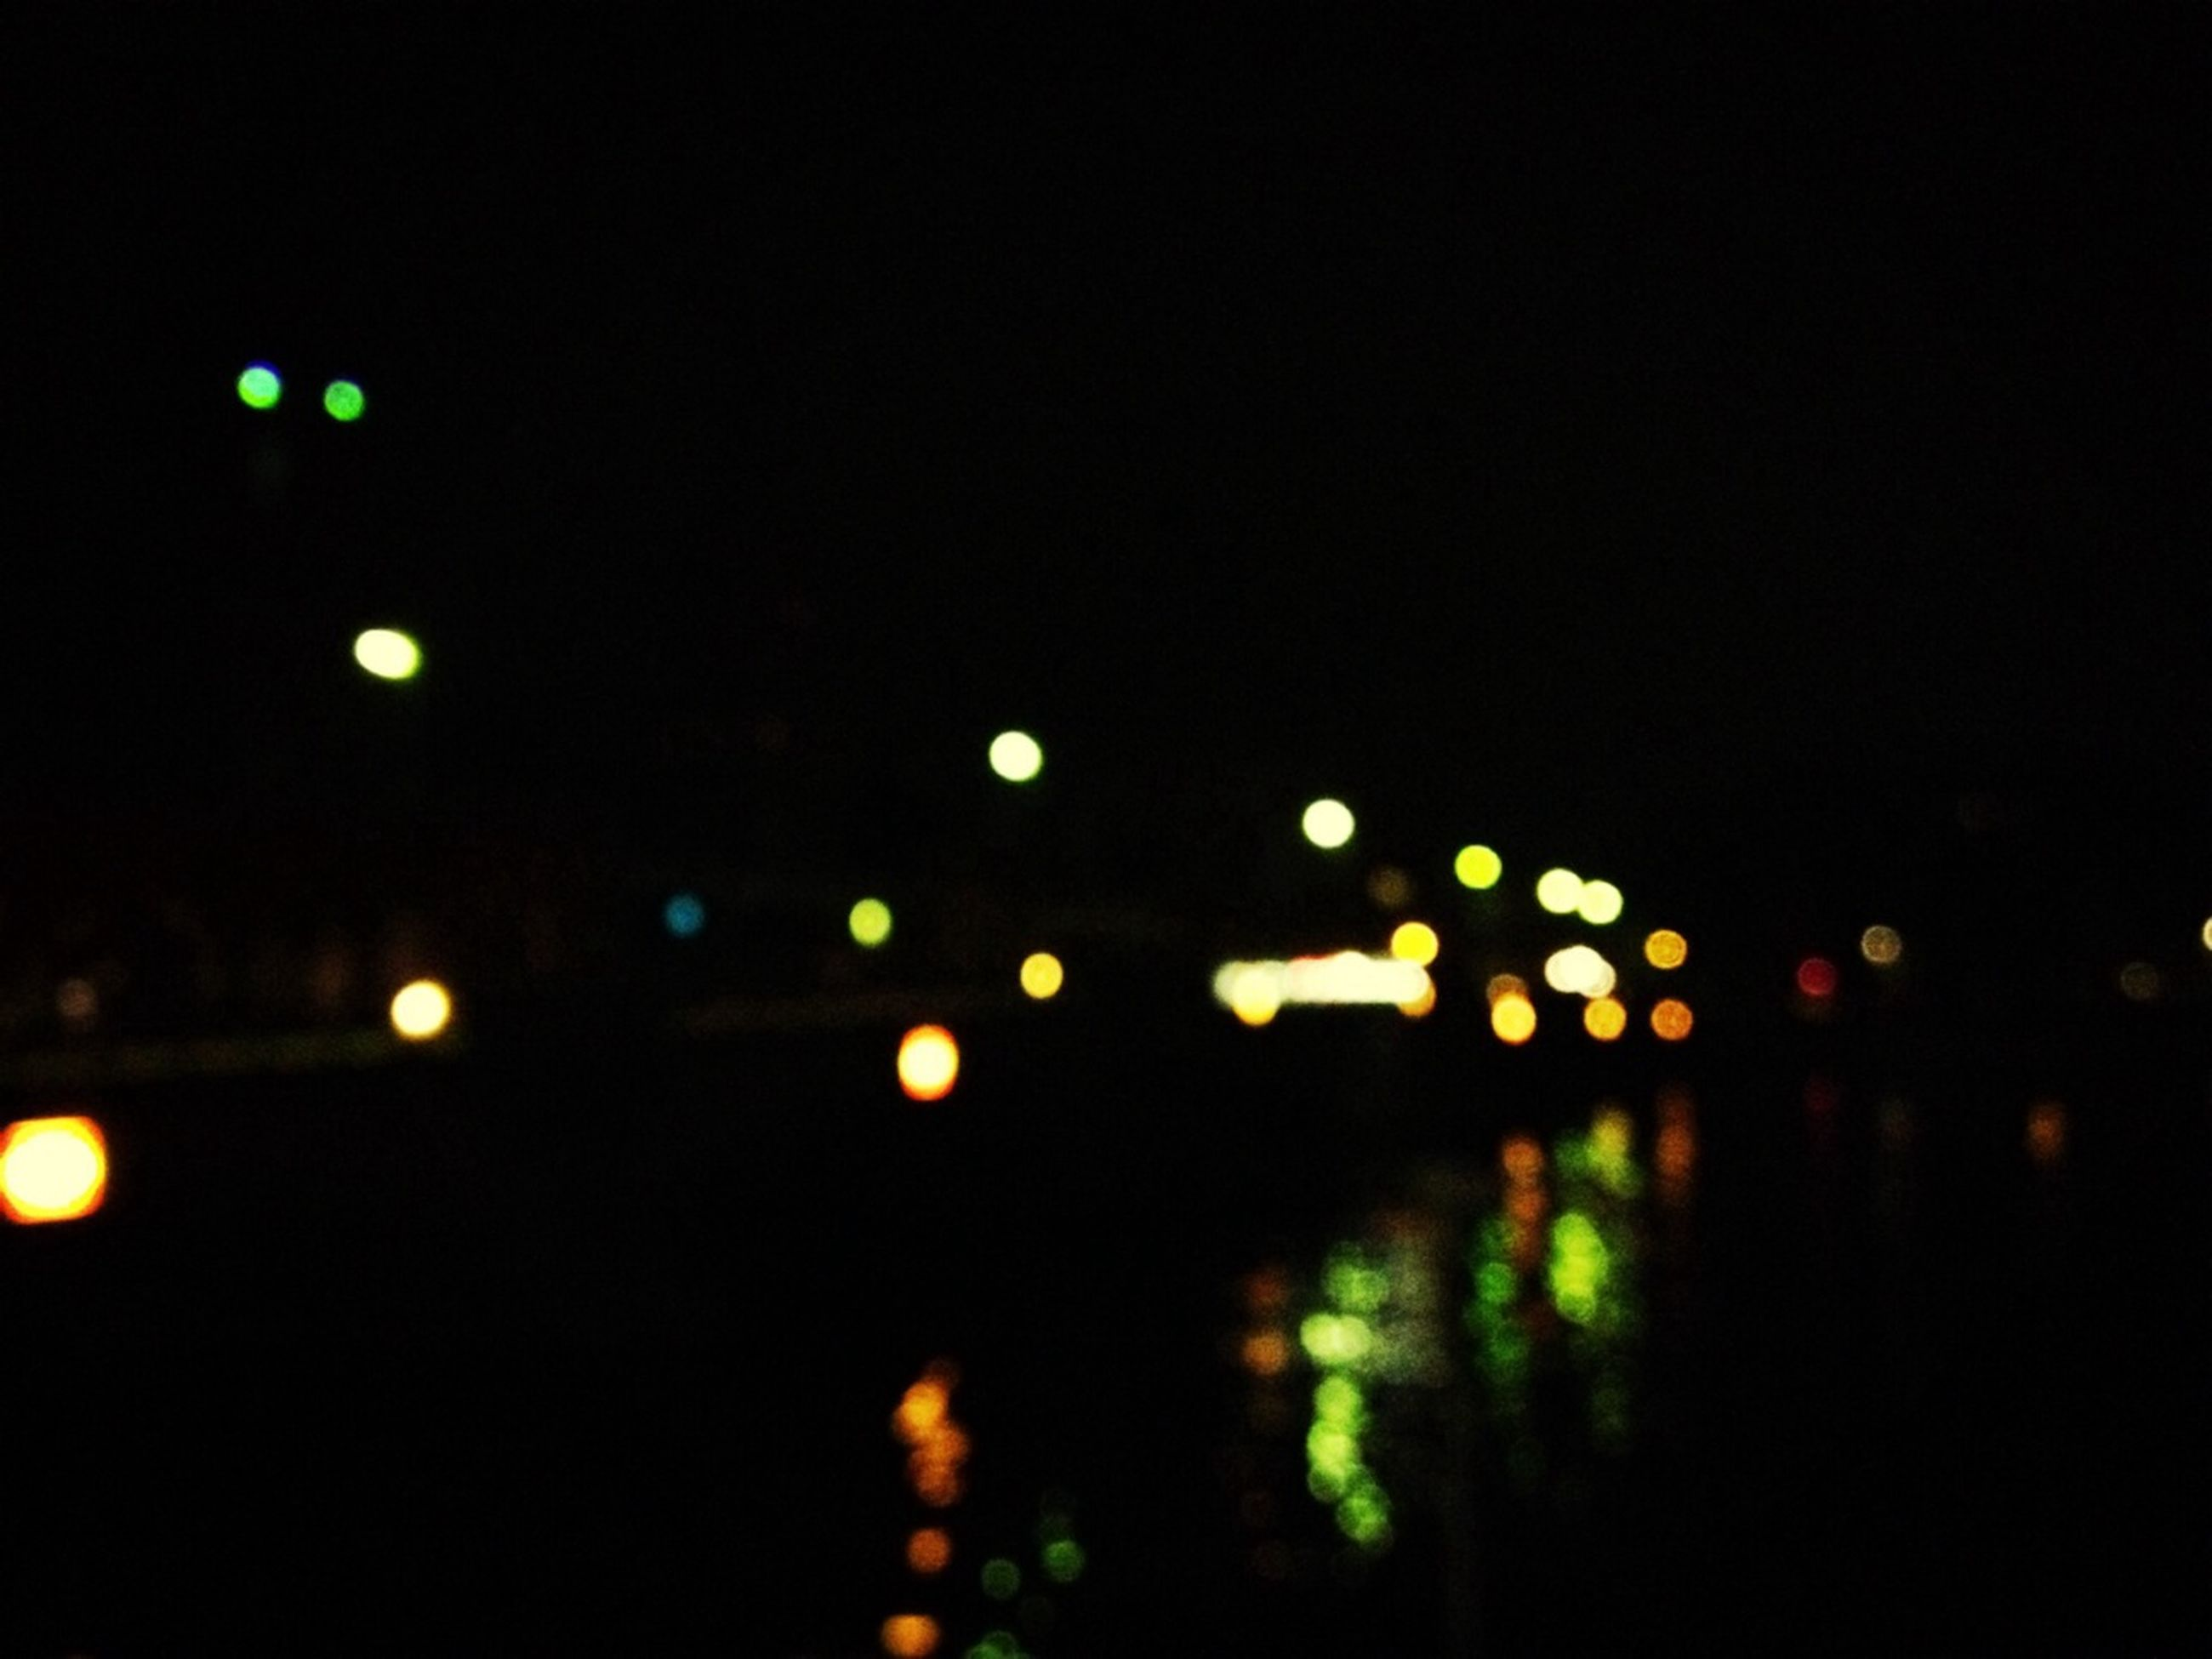 illuminated, night, defocused, lighting equipment, light - natural phenomenon, dark, light, glowing, clear sky, street light, circle, reflection, no people, copy space, sky, outdoors, city, lens flare, water, pattern